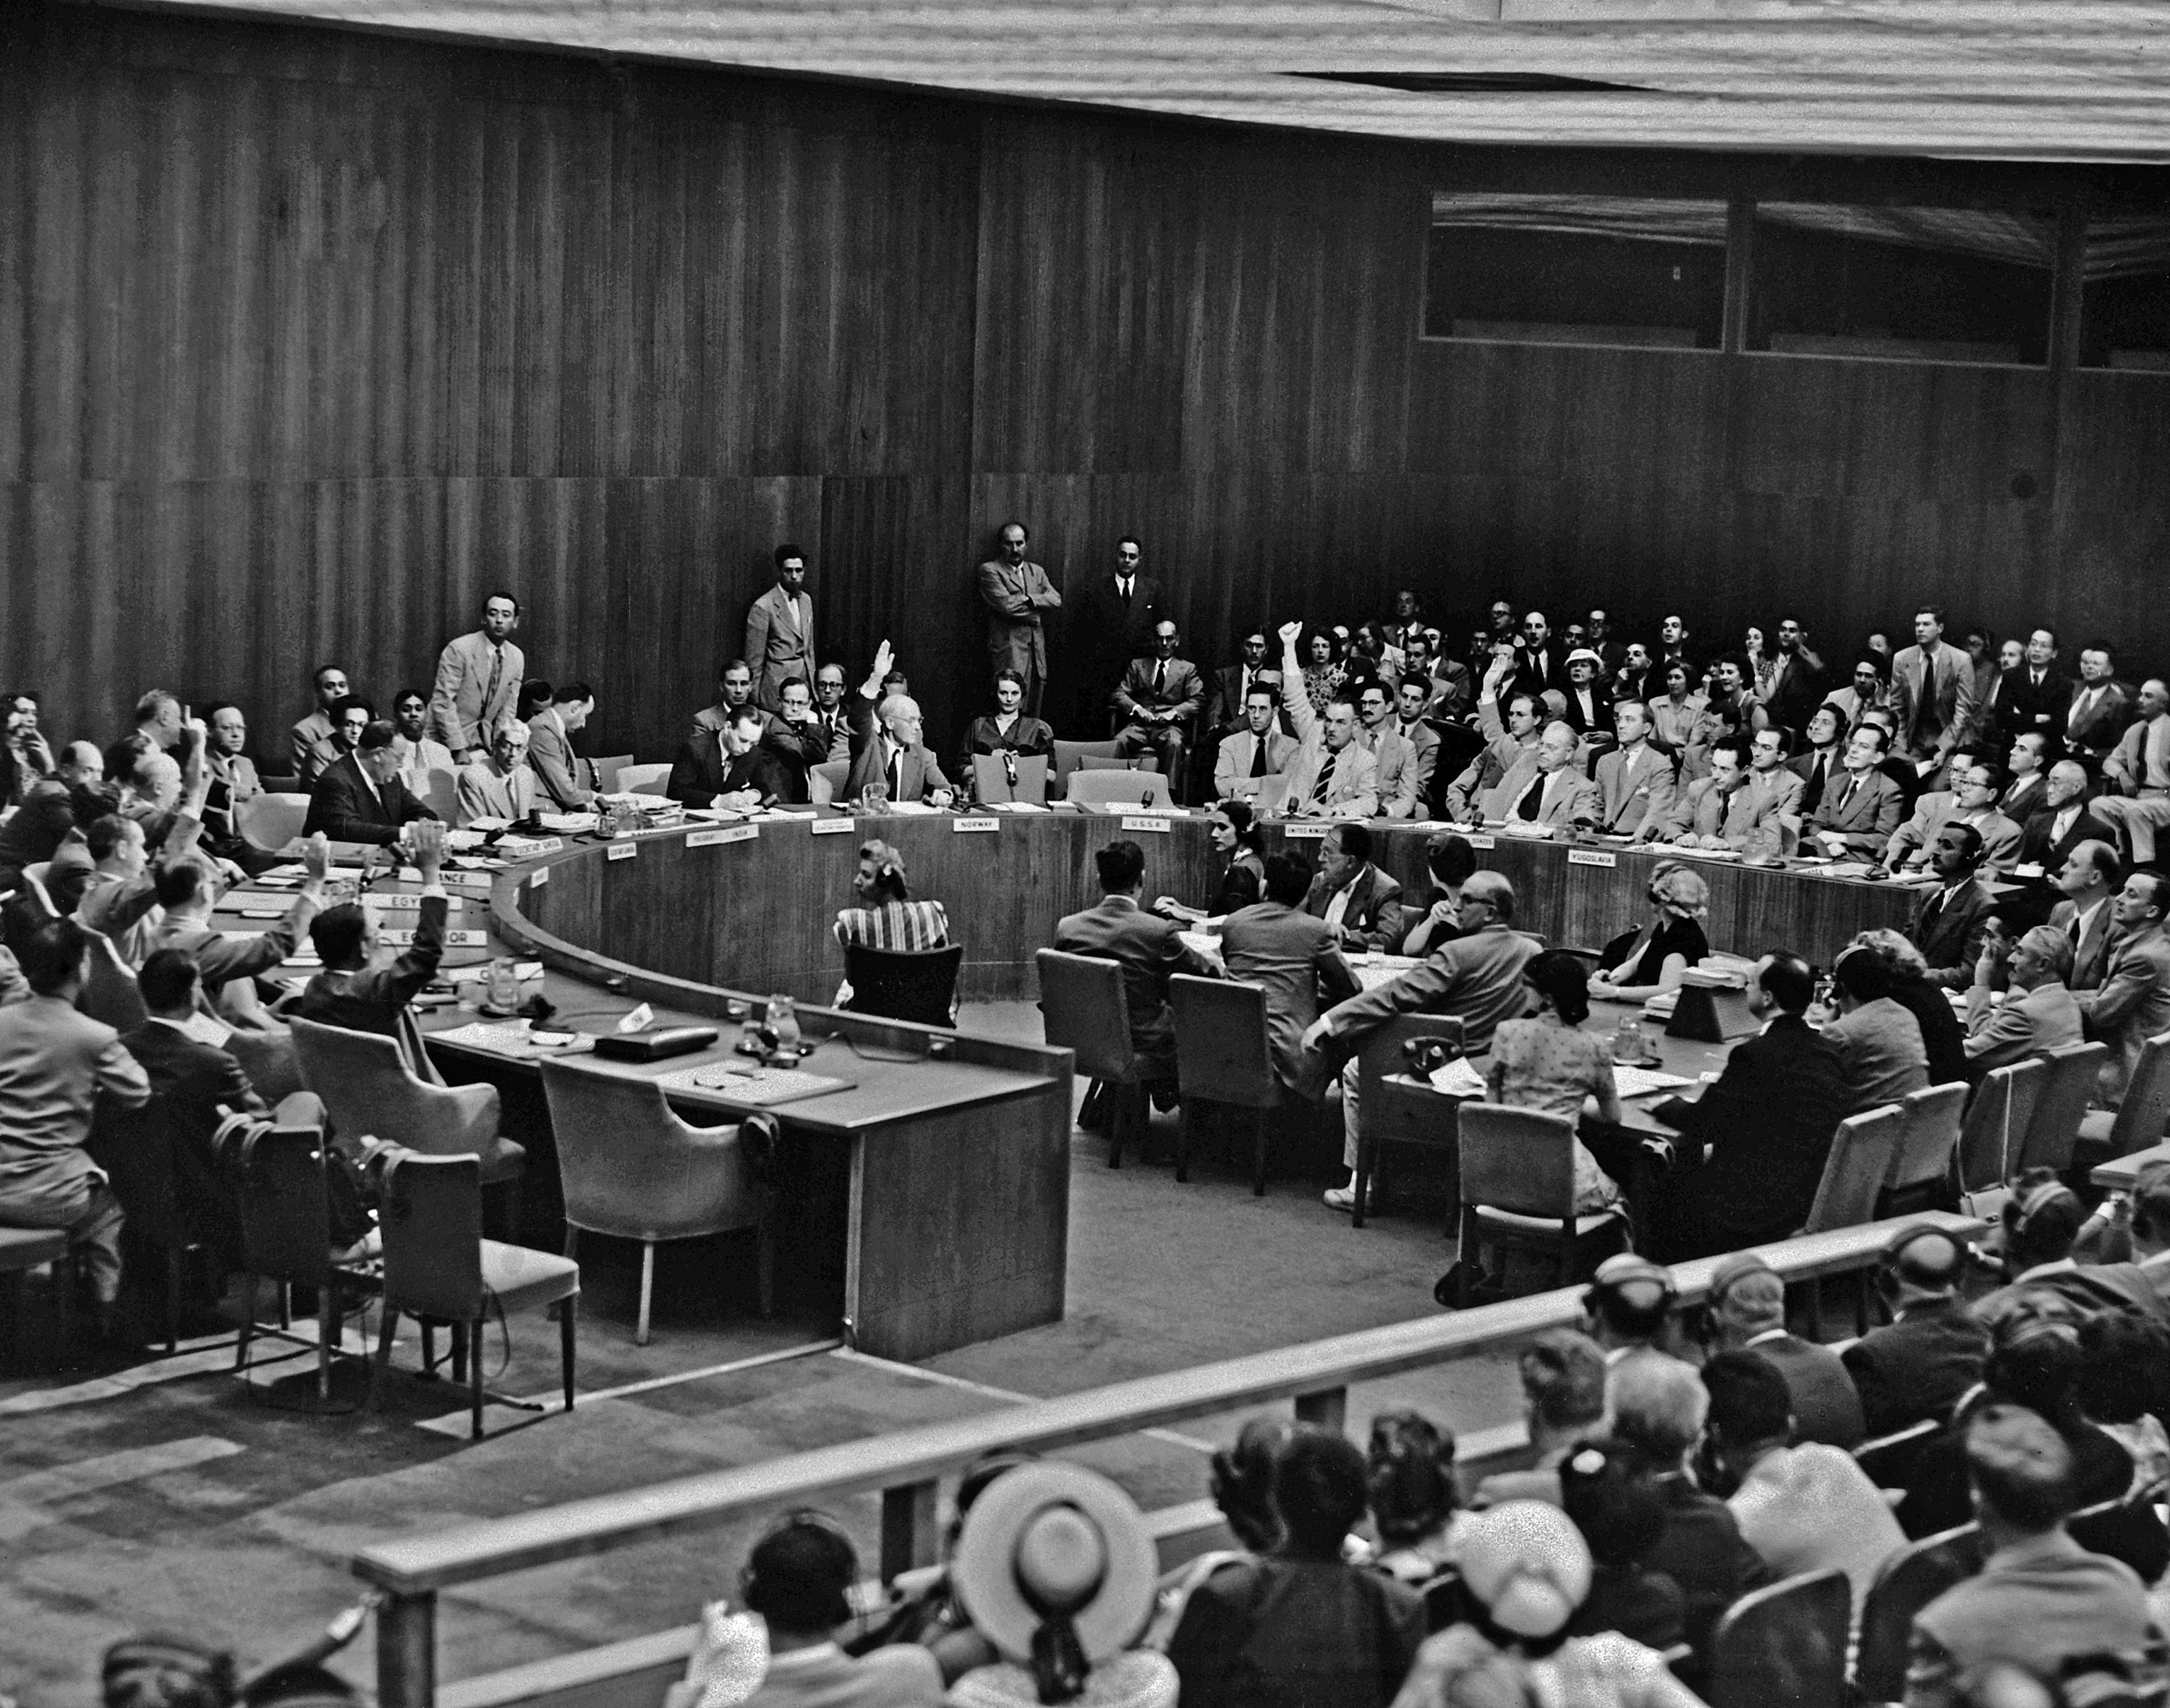 UN Security Council vote on the Sanction Resolution presented by the US, thus opening the way for unreserved military operations by the 59 UN members. With U.S.S.R. absent, and Yugoslavia voting against, the vote was seven to one in favour of the Resolution (Egypt and India reserving their vote until reception of instructions of their government). A general view of the Security Council conference room during the voting on the Sanction Resolution on Korea. On the picture, at left, the seven hands in favour of the resolution are shown raised, they stand for China (Taiwan), Cuba, Ecuador, France, Norway, United Kingdom, and USA. 27 June 1950 United Nations, Lake Success, New York. Credit: UN Photo